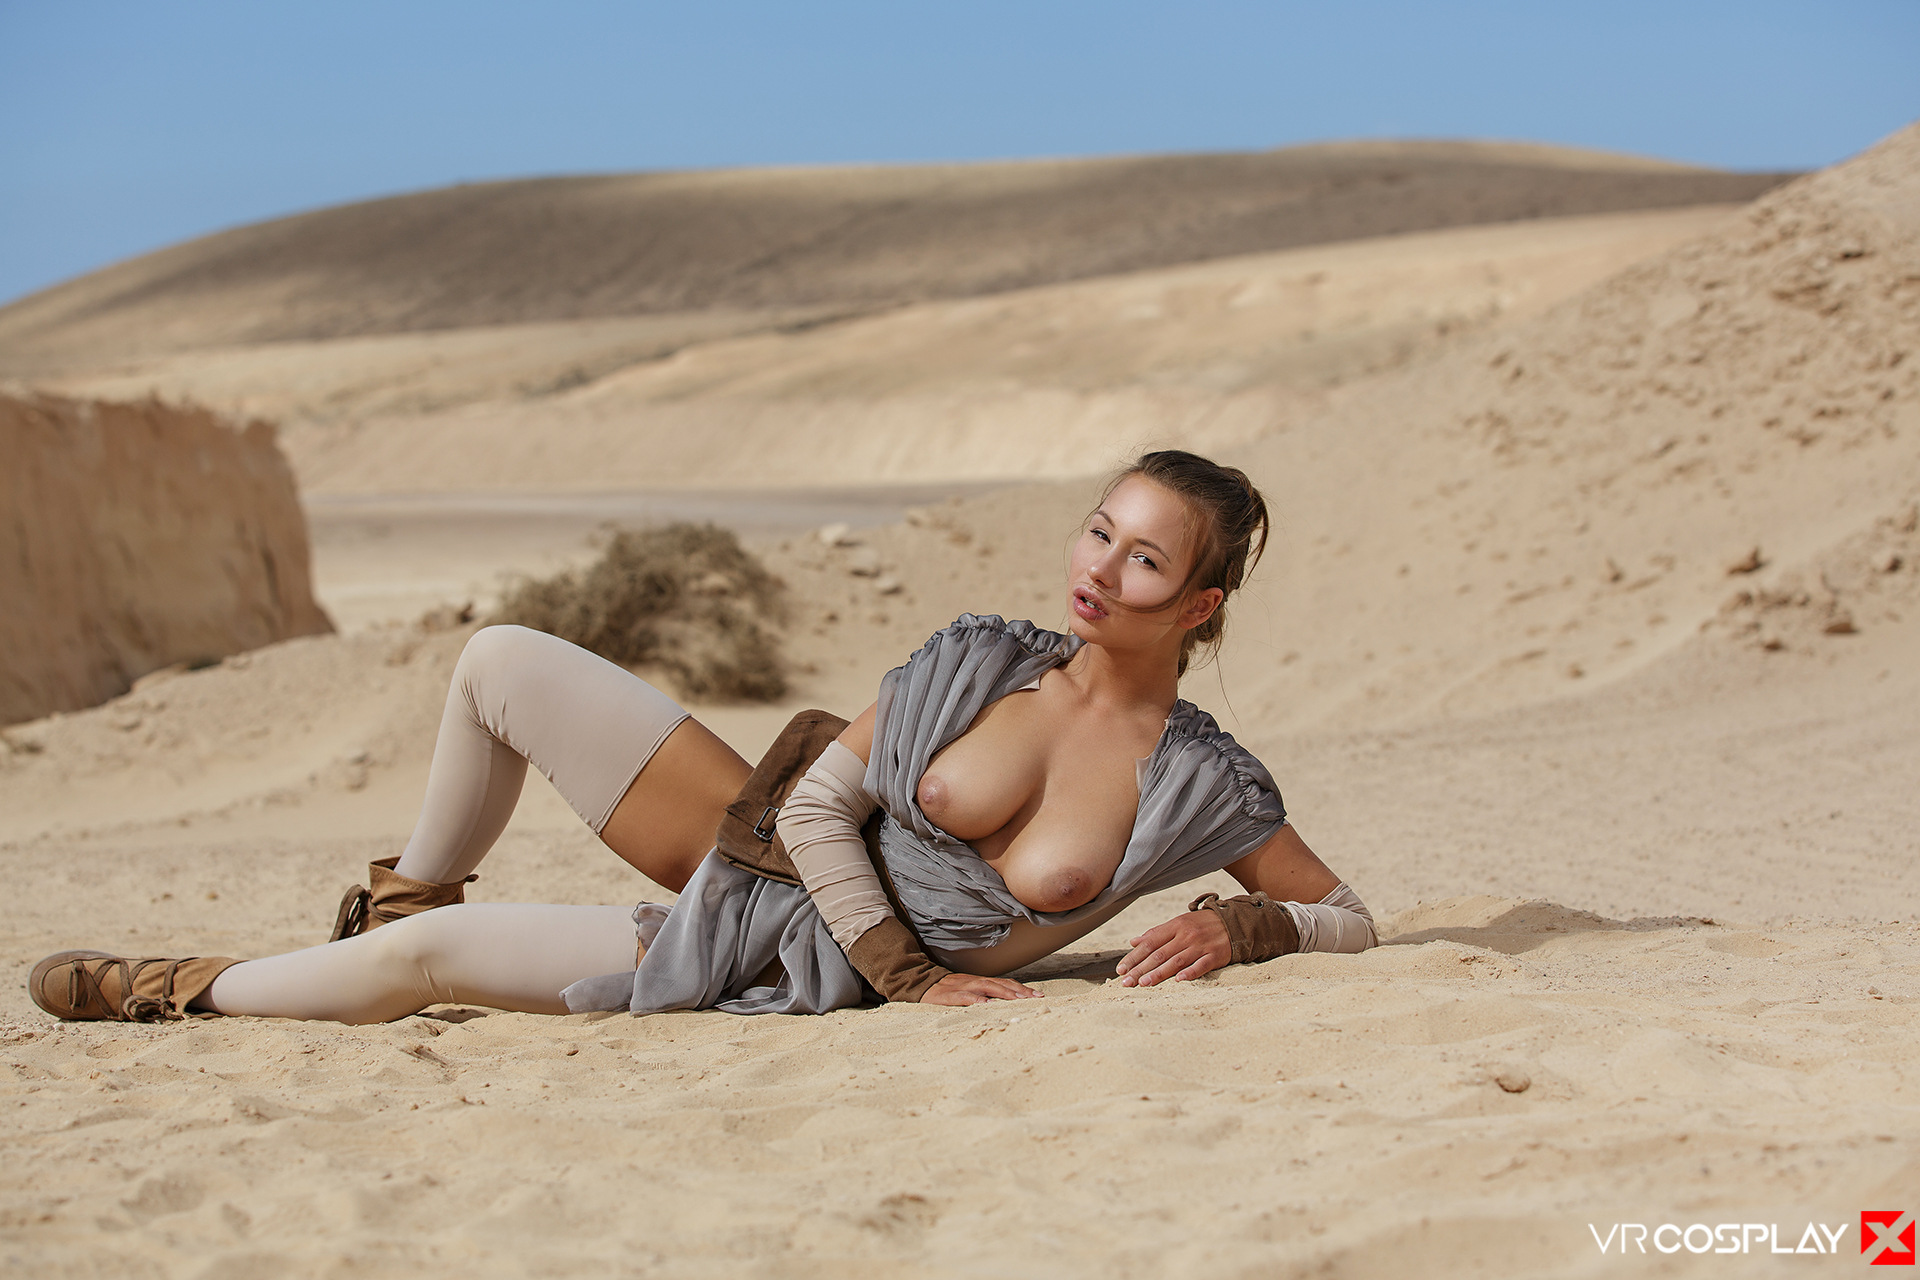 Star Wars Cosplay Porno